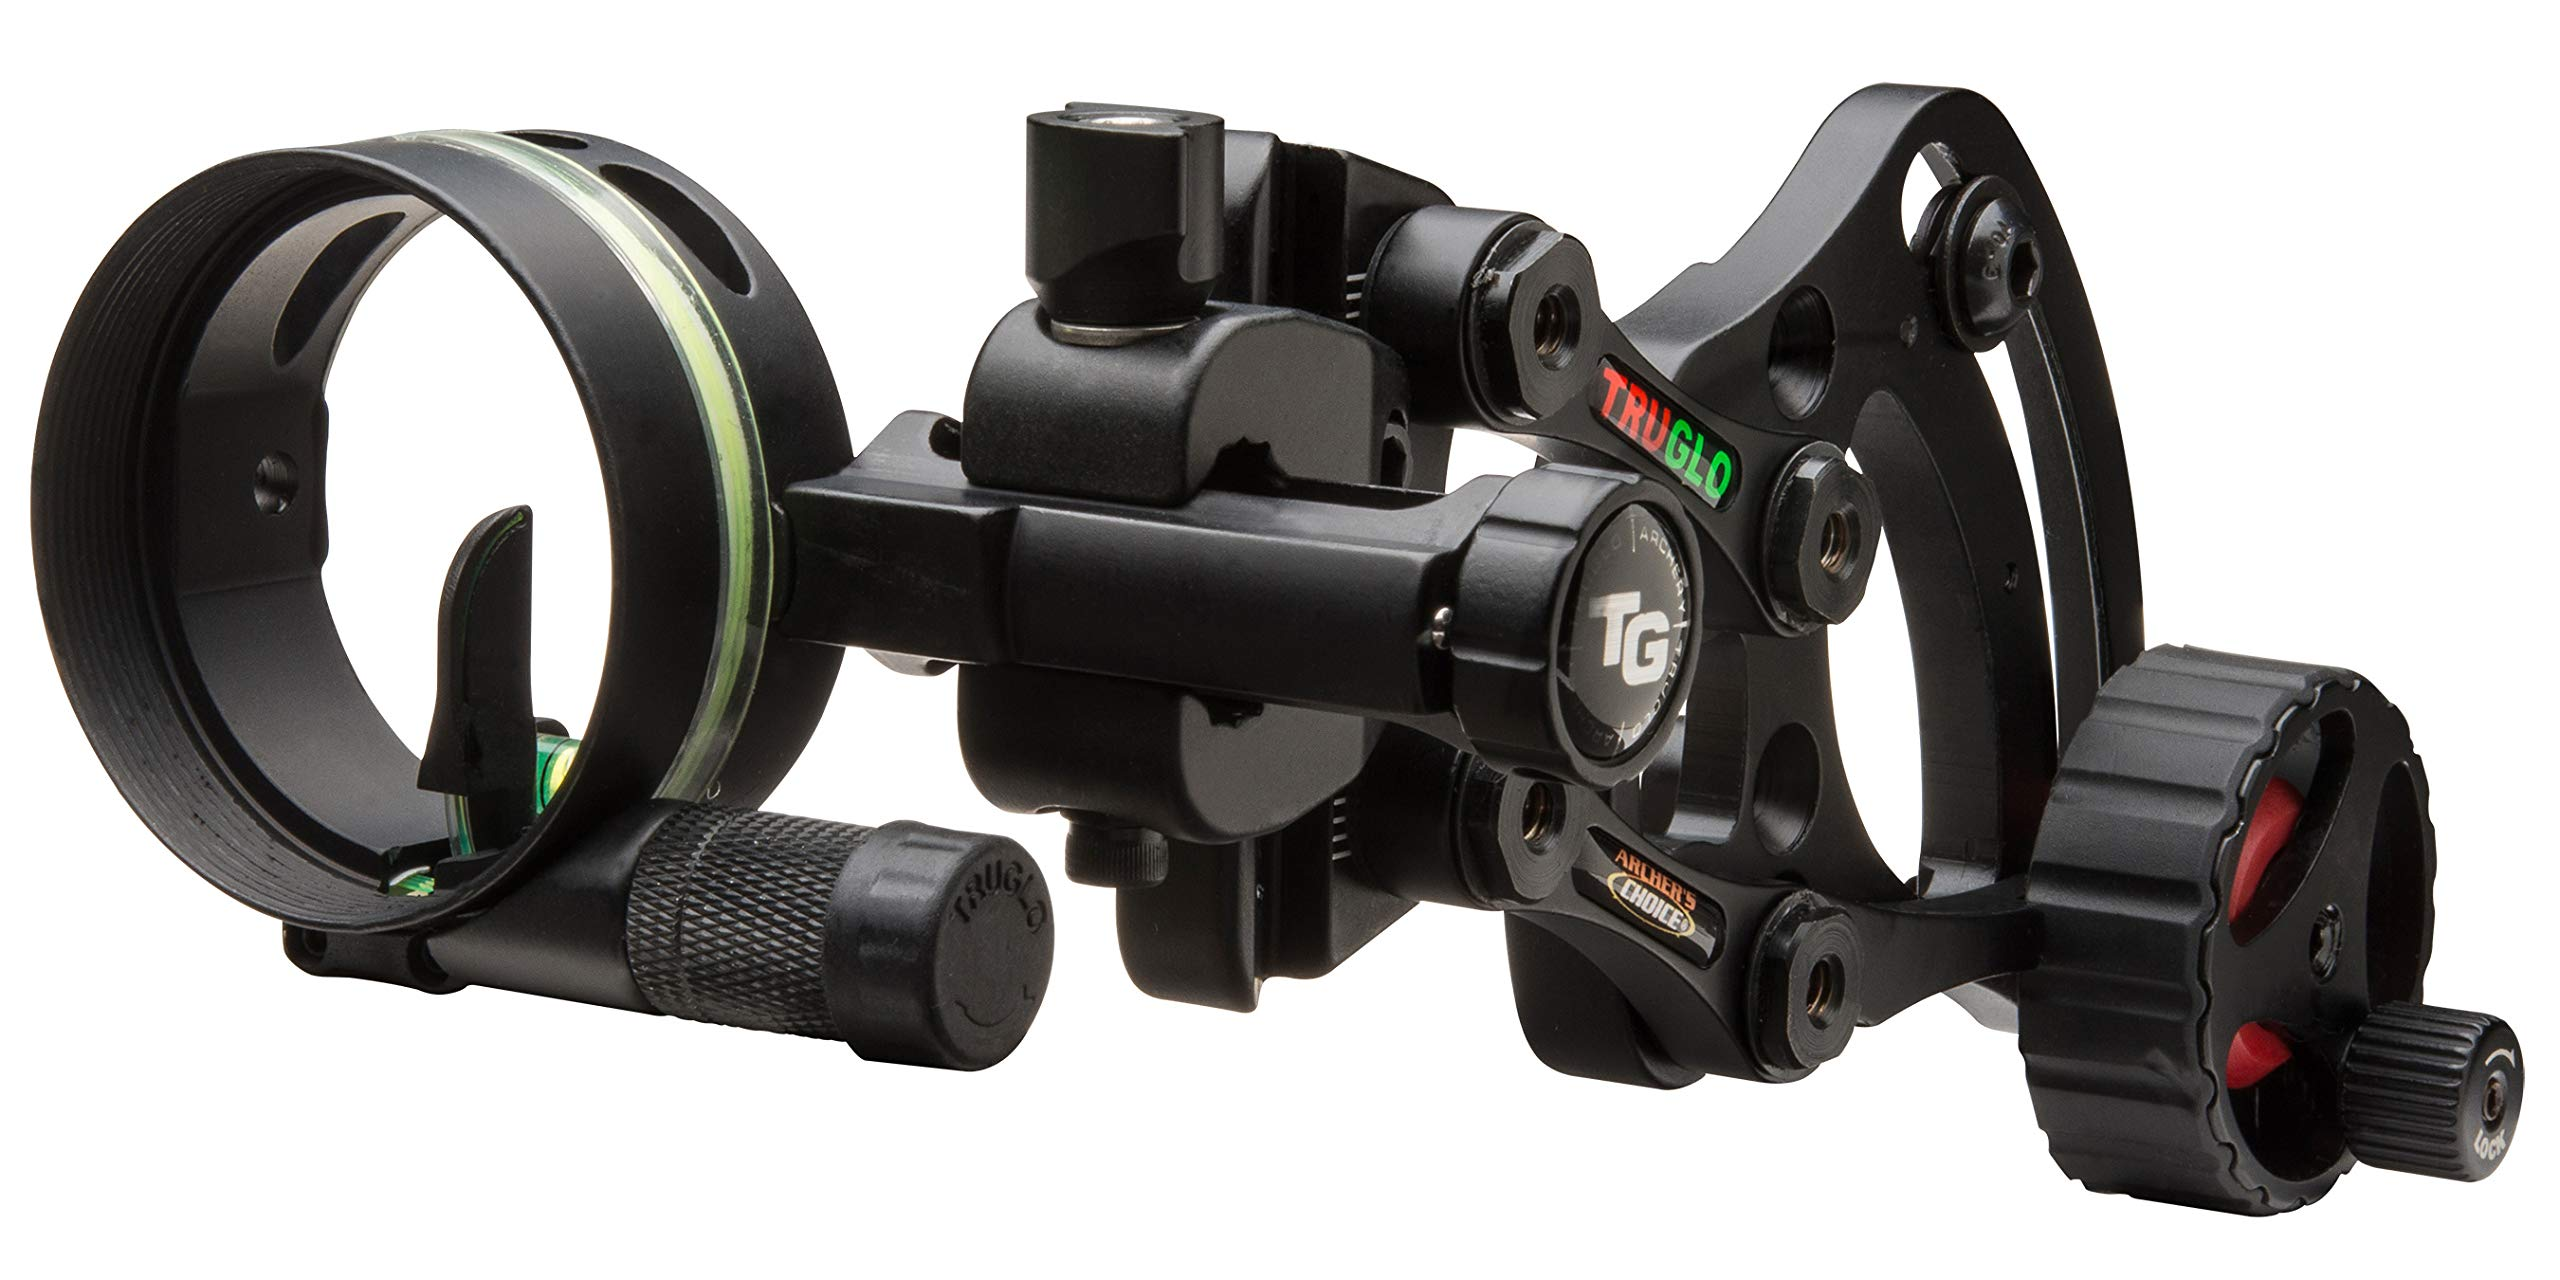 TRUGLO RANGE-ROVER Series Single-Pin Moving Bow Sight, Black, Left-Handed, .019'' Pin, Toolless Micro-Adjustable Windage